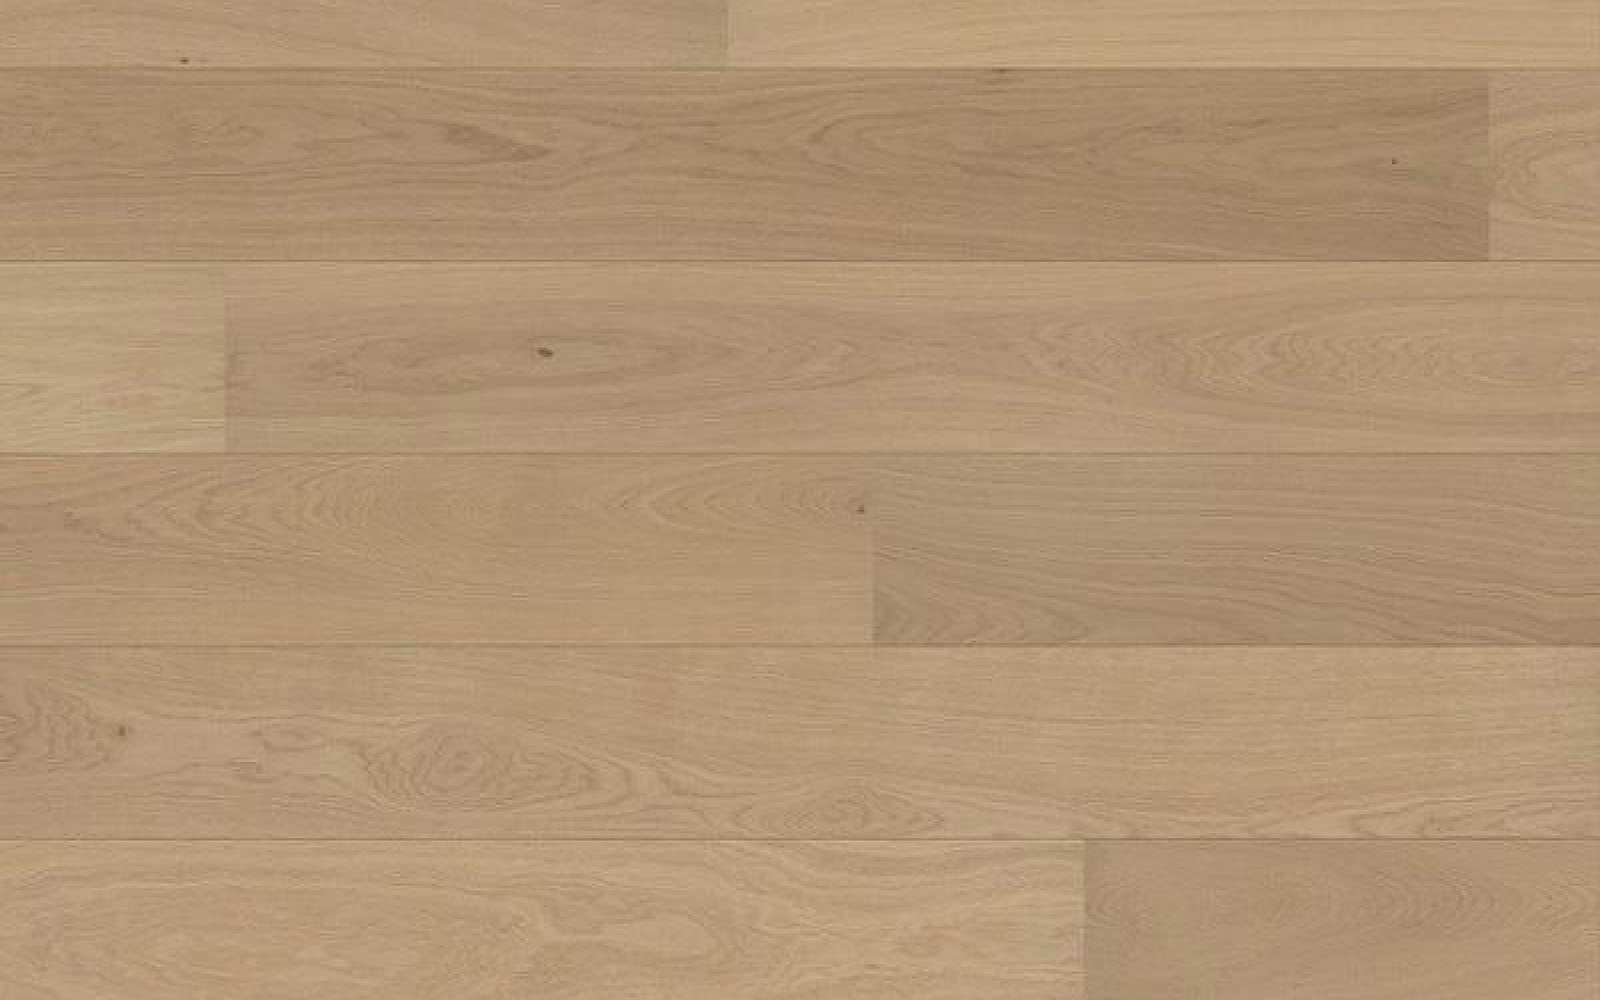 Паркетная доска Upofloor Ambient Дуб Grand Brushed White Oiled (гранд браш белое масло) FP 138